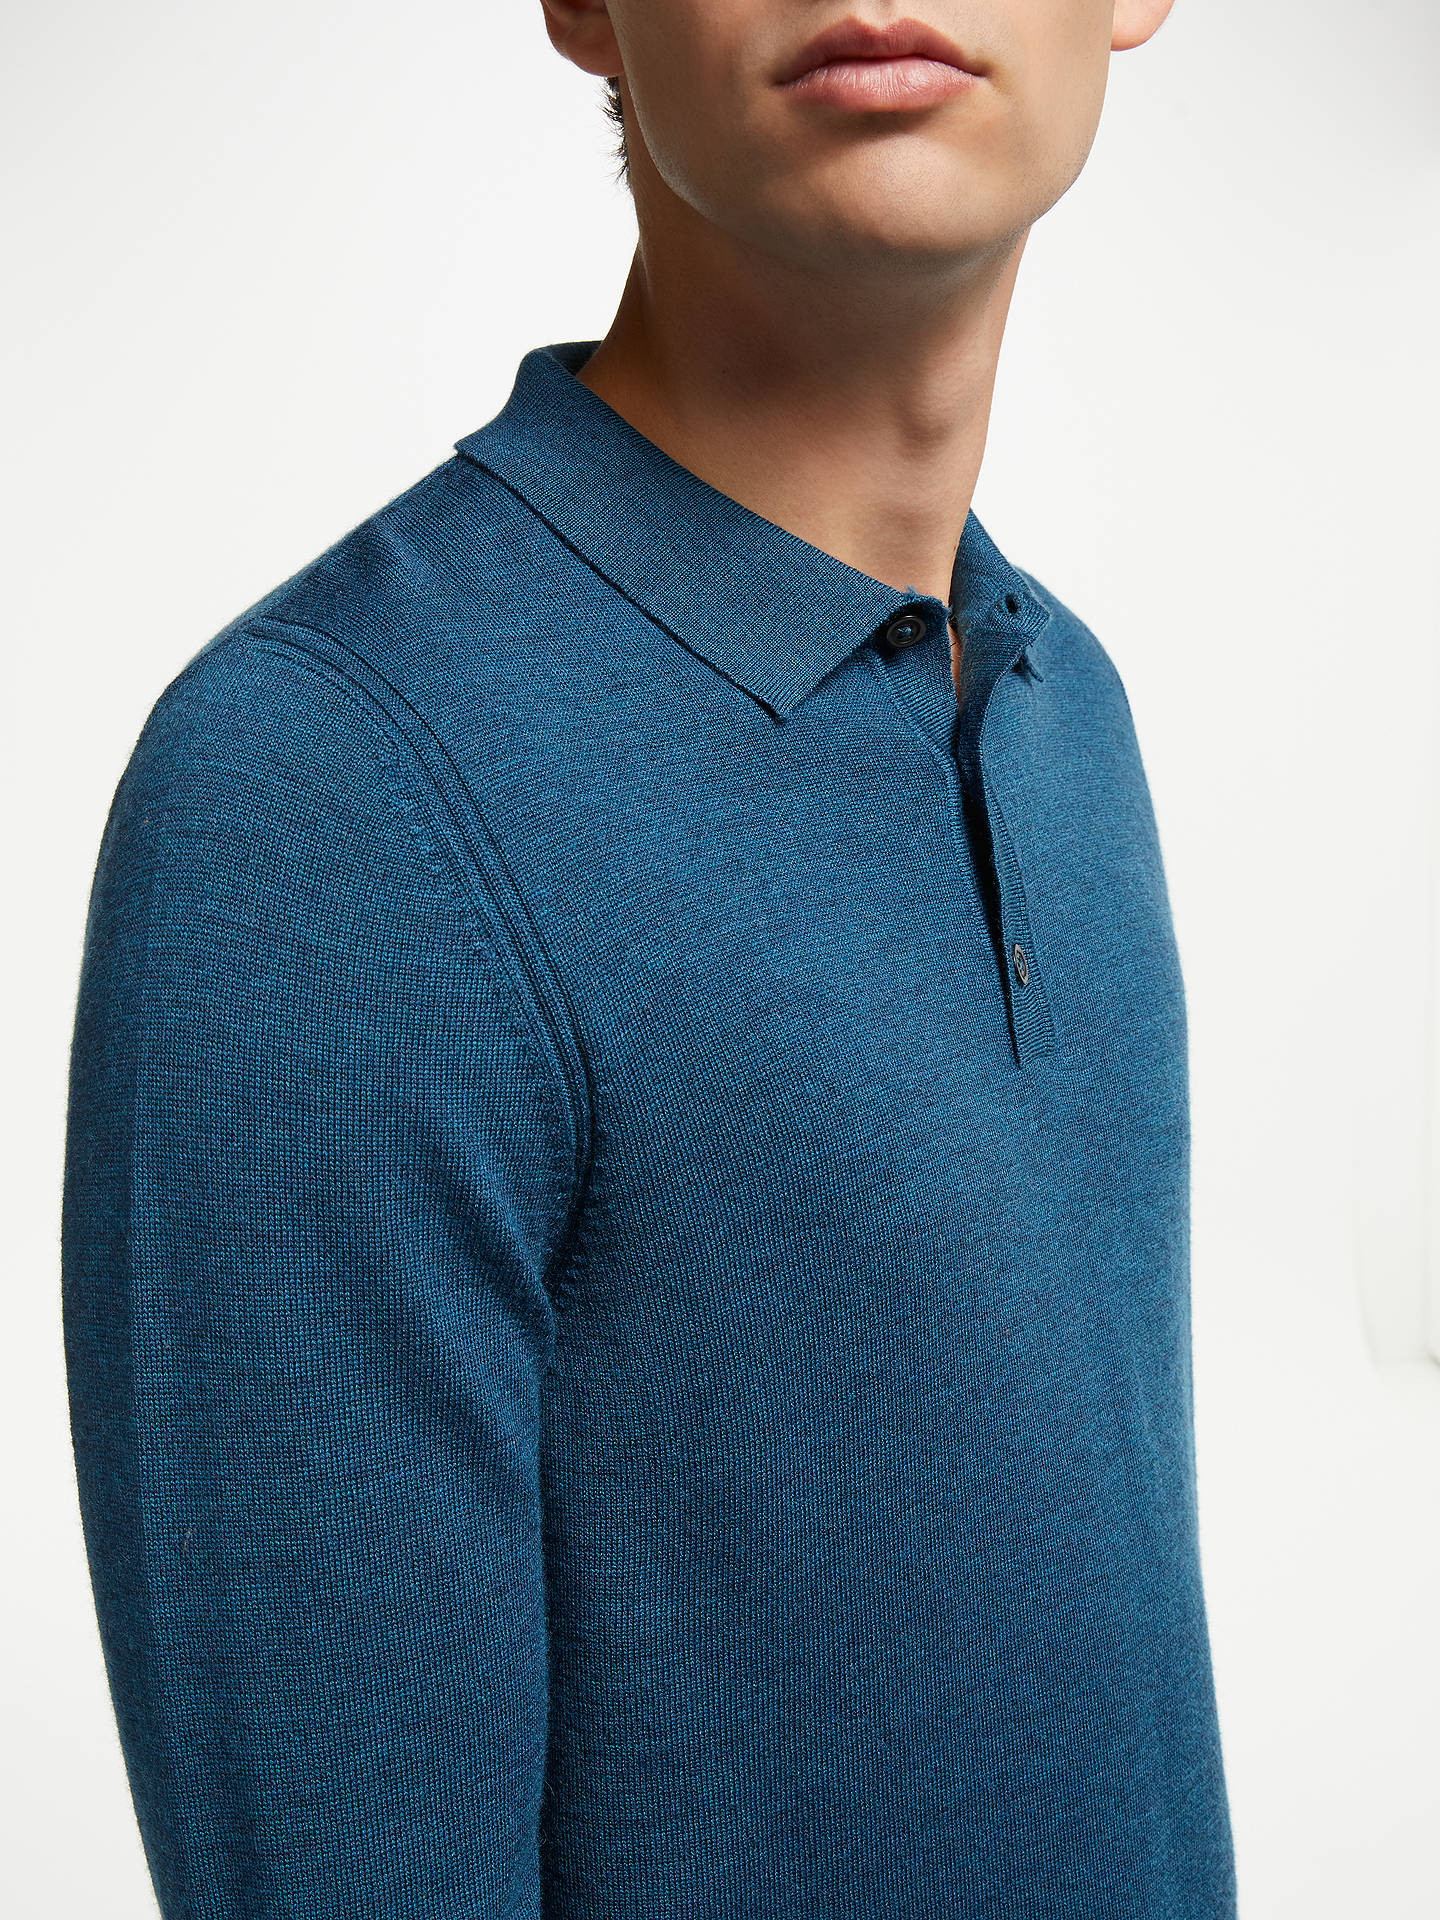 BuyJohn Lewis & Partners Merino Polo Shirt, Petrol Blue, S Online at johnlewis.com